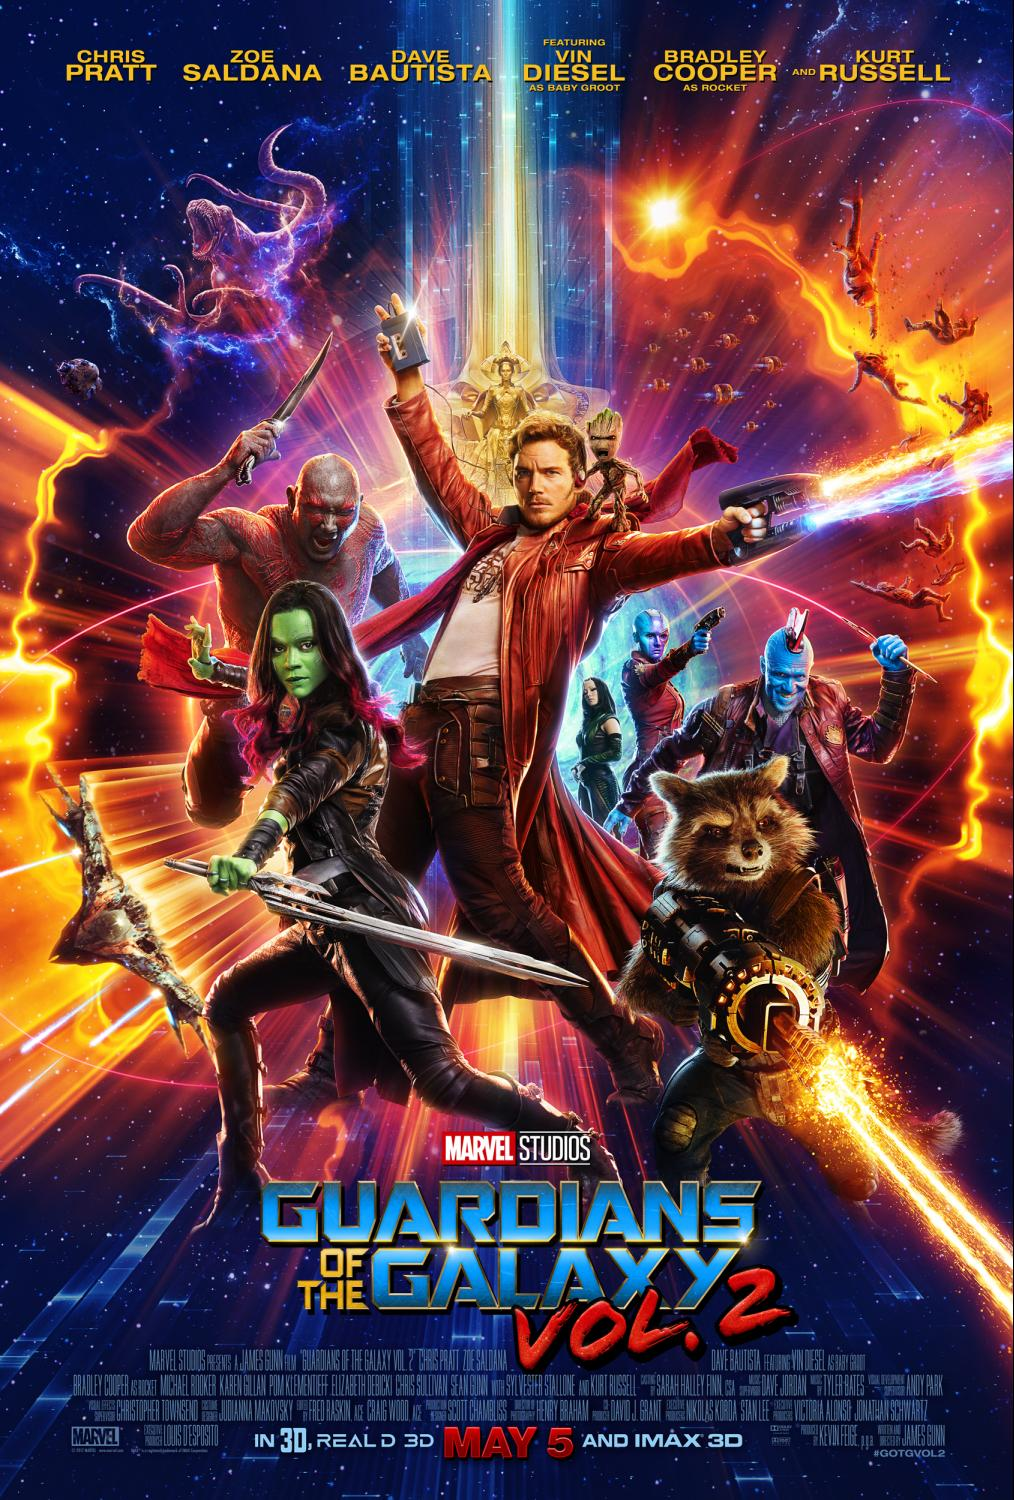 GUARDIANS OF THE GALAXY VOL. 2 -#GotGVol2